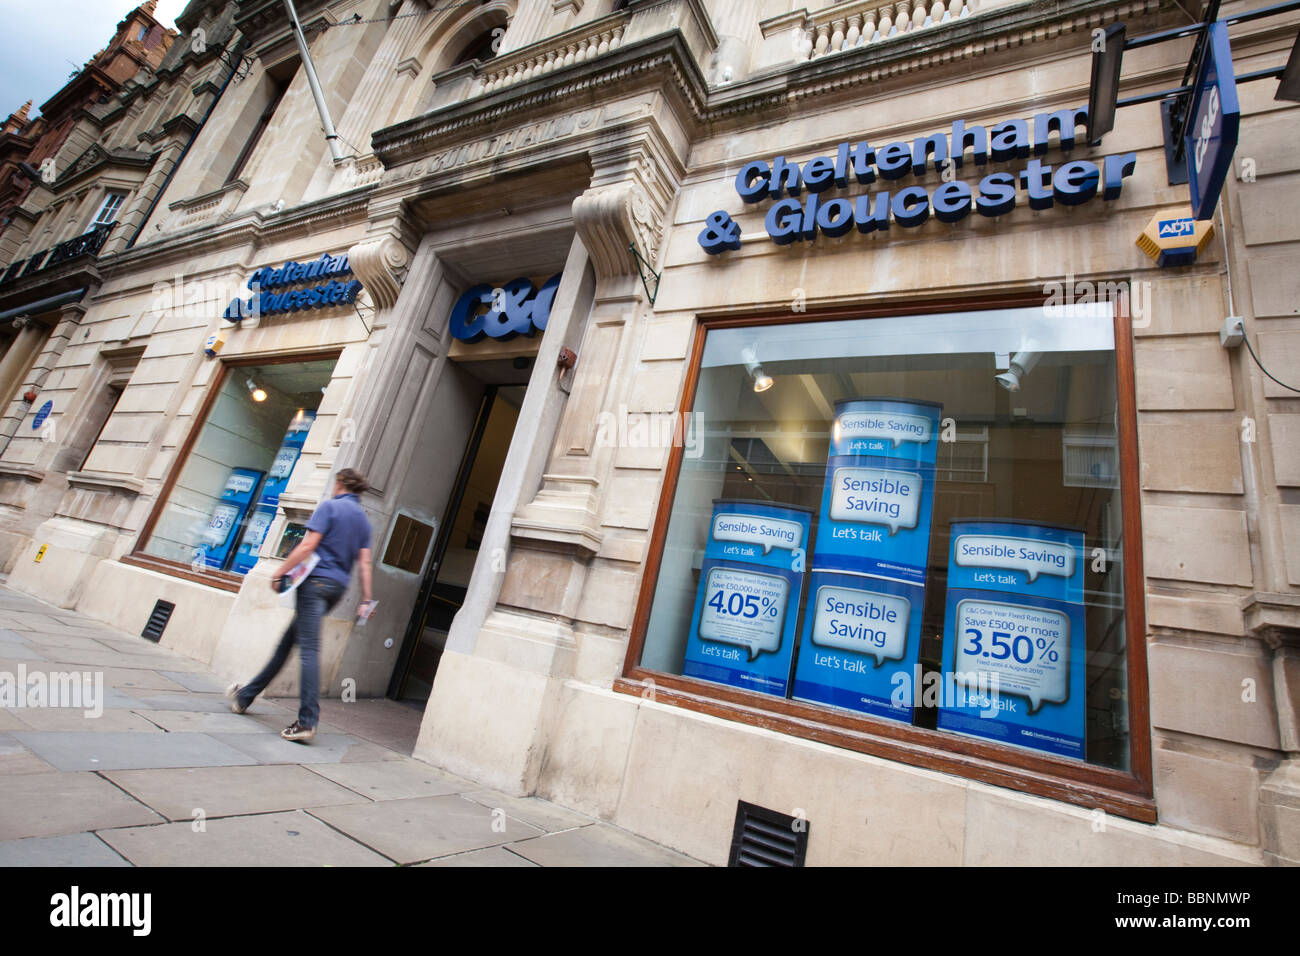 A branch of the Cheltenham & Gloucester Building Society, Gloucester, Gloucestershire UK - Stock Image